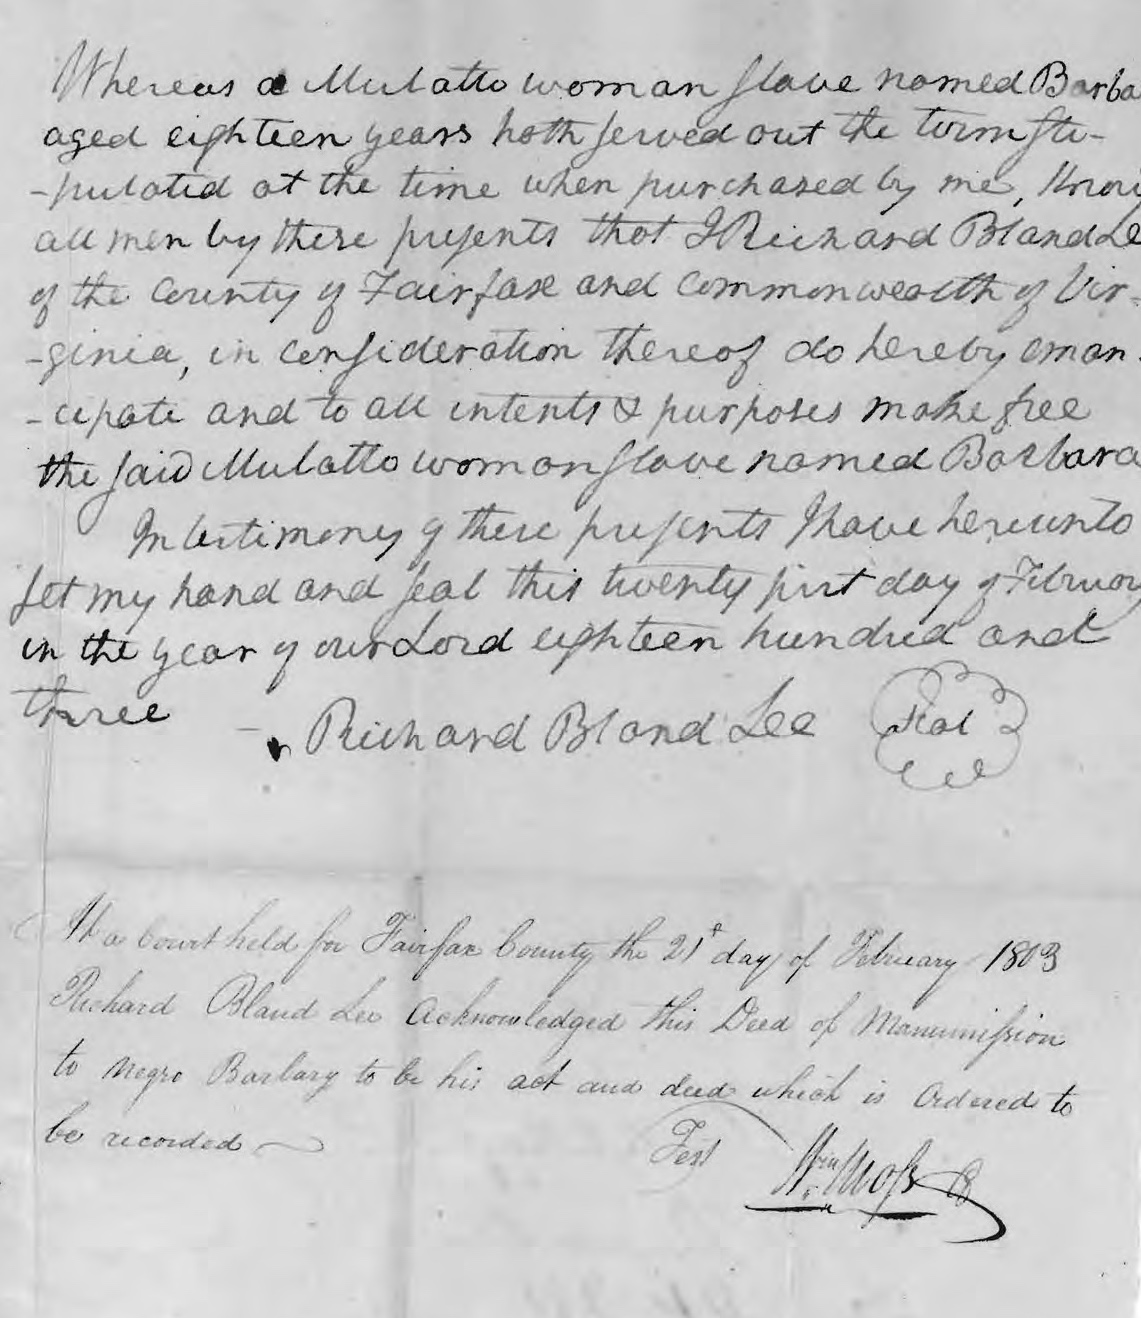 An excerpt of an 1803 manumission document for a woman named Barbara by Richard Bland Lee, a wealthy Fairfax County landowner. Original at Fairfax County Archives.